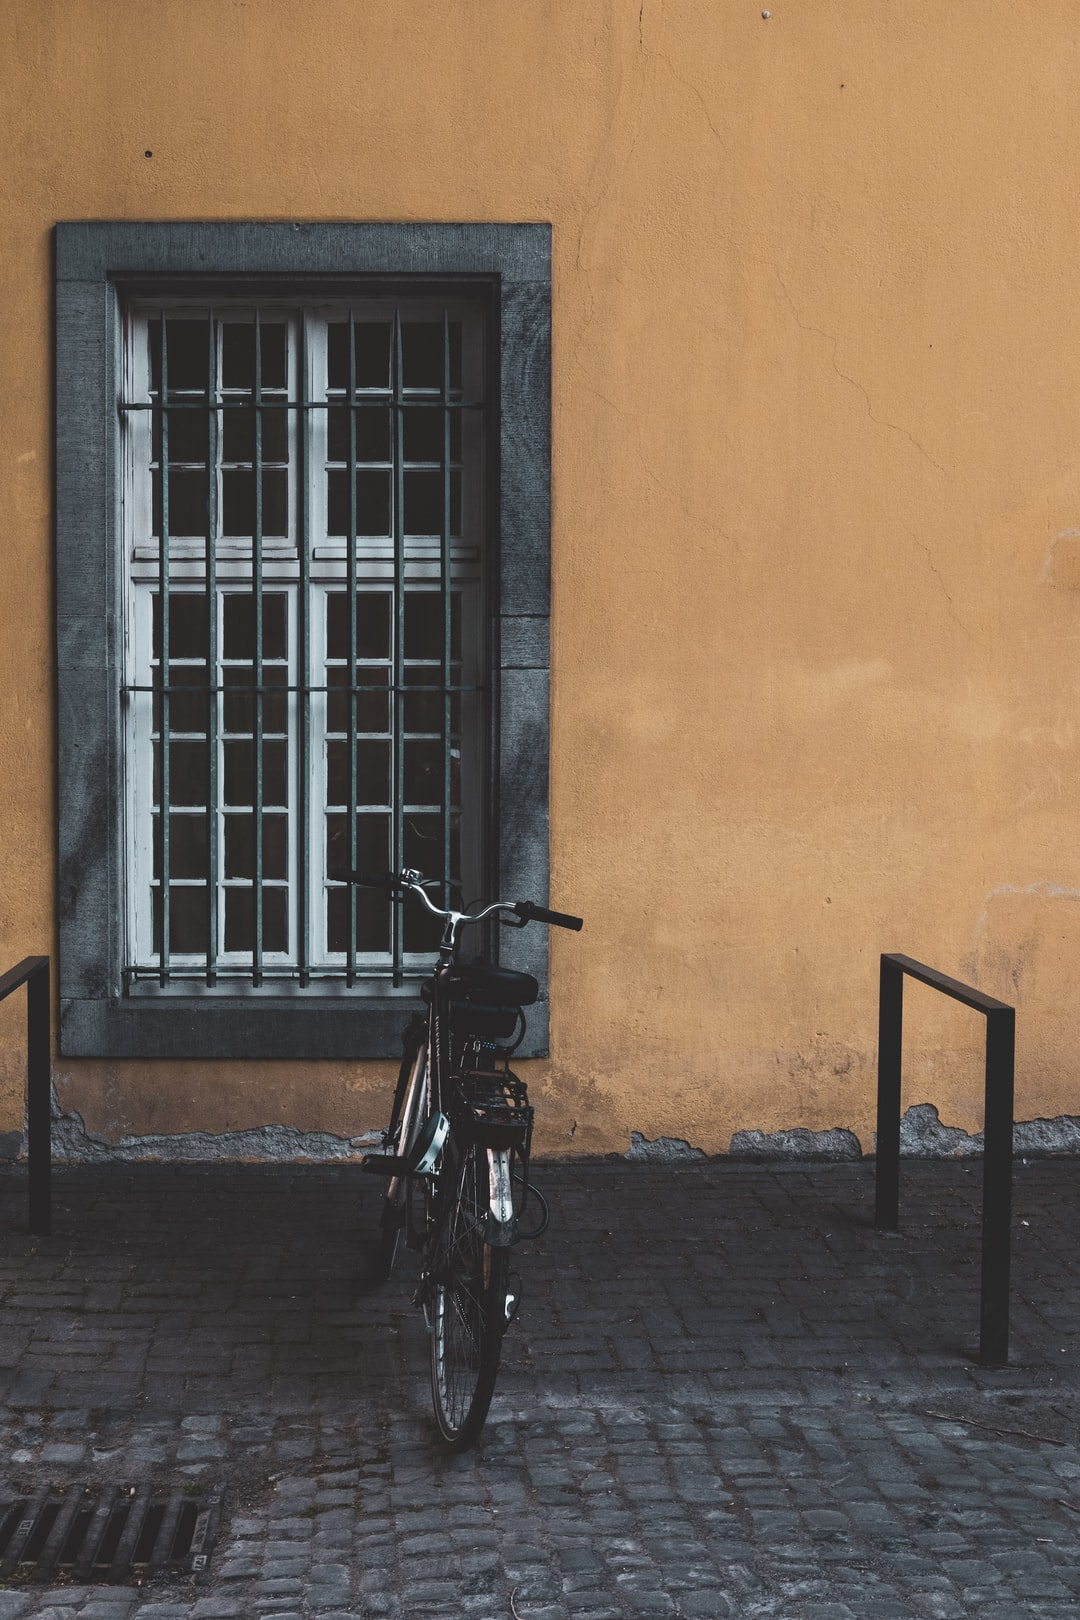 Yellow Wall And The Bike